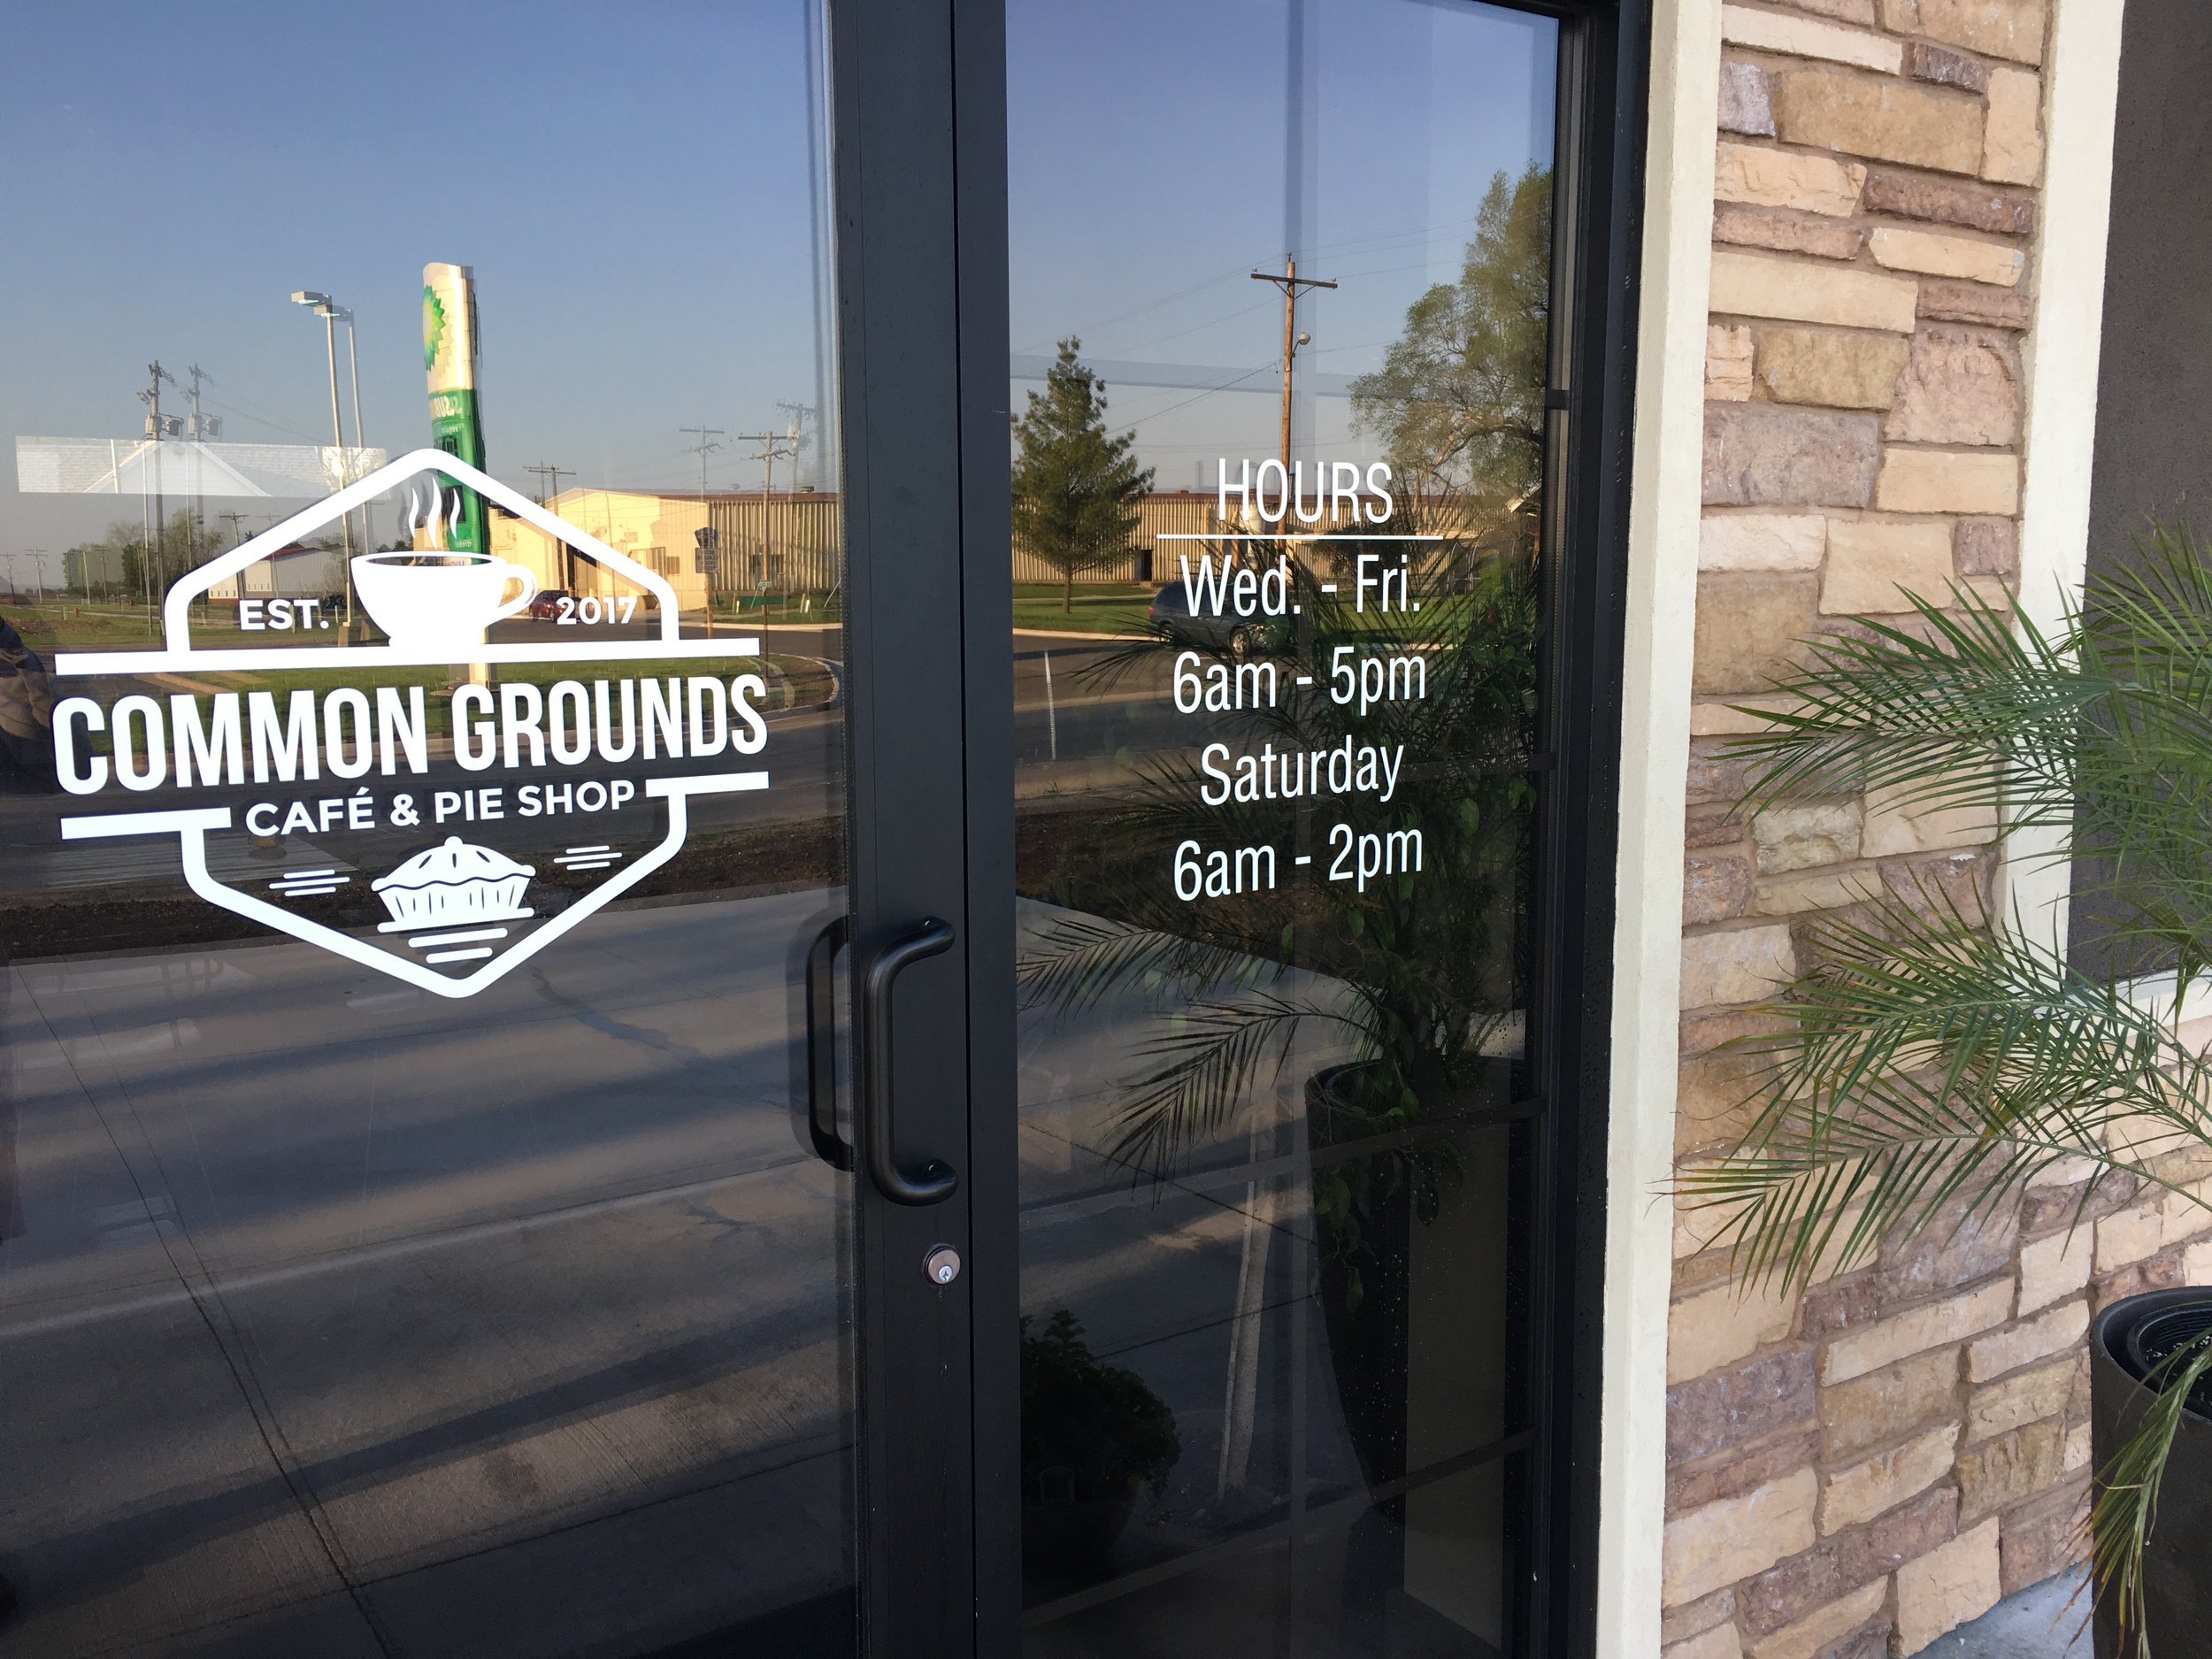 Common Grounds Hours of Operation